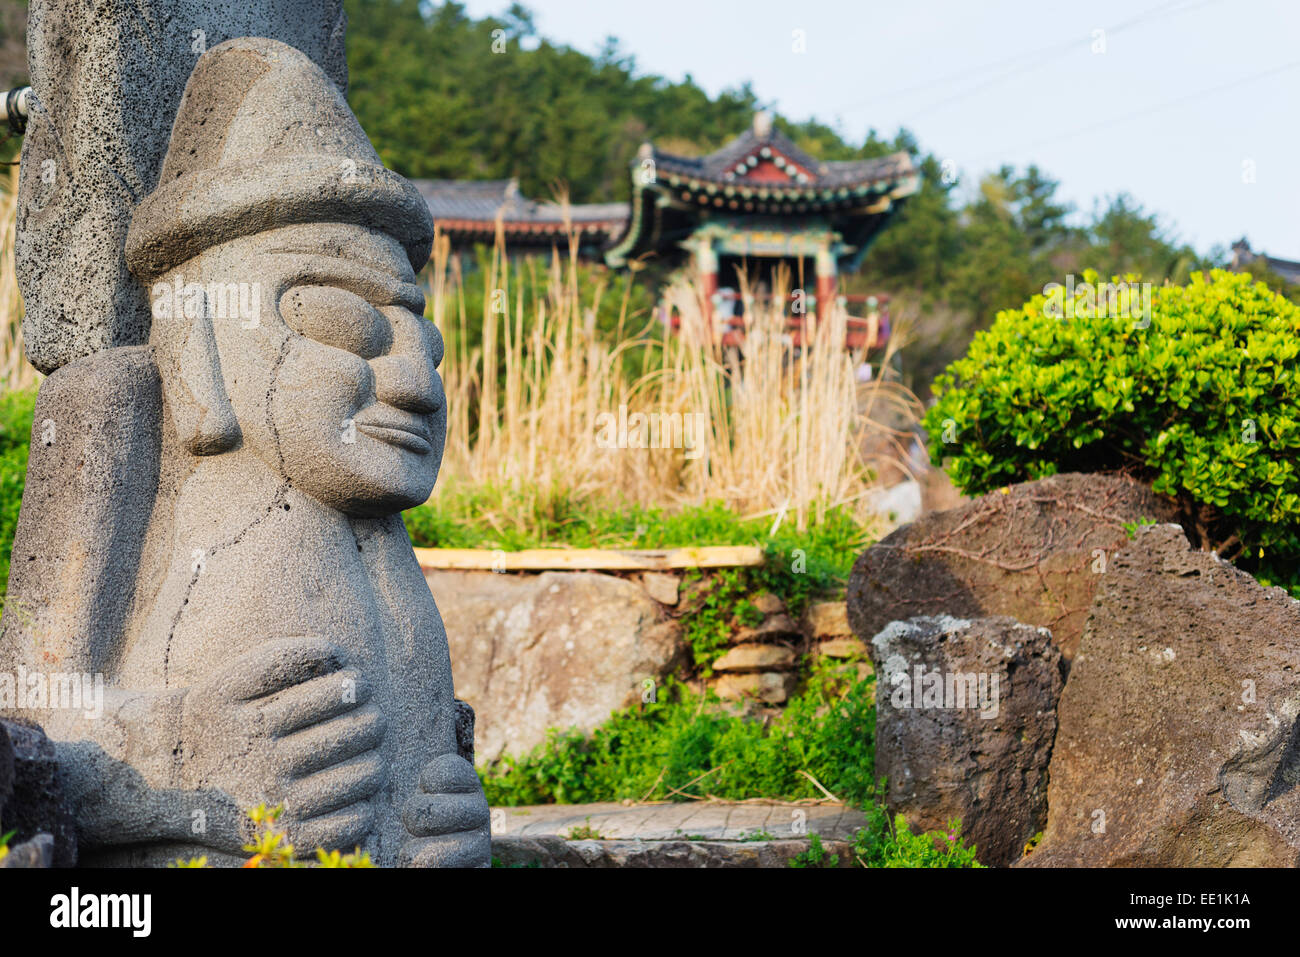 Dol hareubang (harubang) protection and fertility statue at Sanbanggulsa Temple, Jeju Island, South Korea, Asia - Stock Image